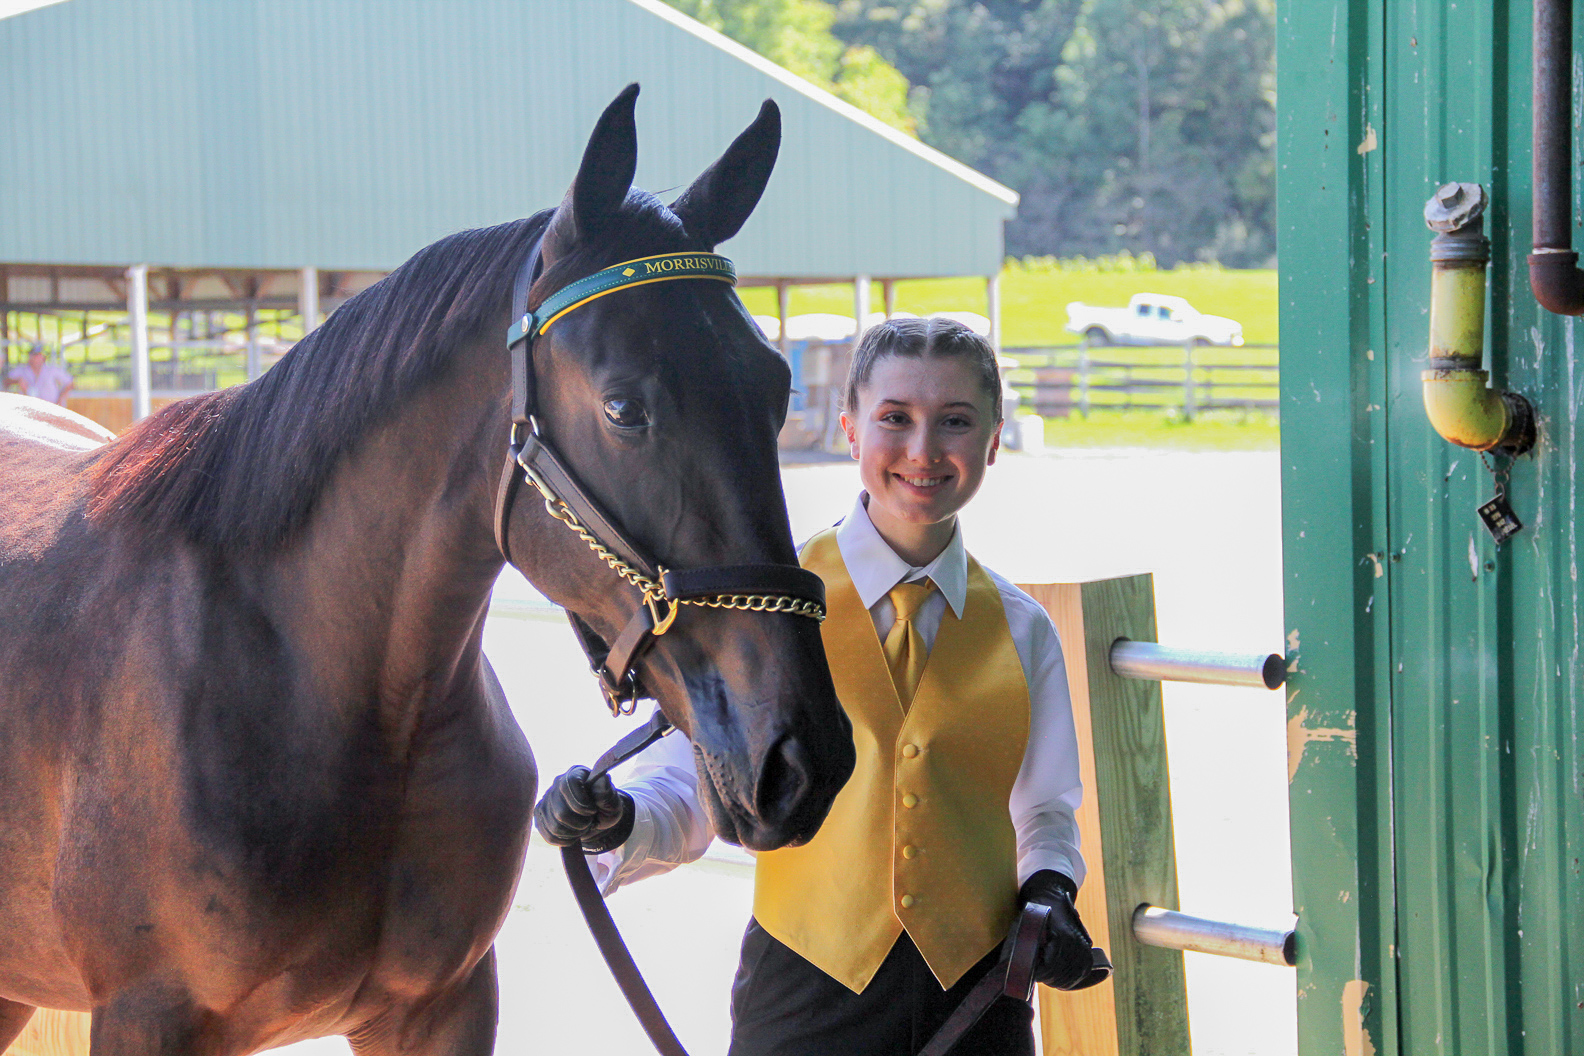 SUNY Morrisville equine student, Christine Kevan, leads a yearling into the show ring during the college's 2018 Annual Yearling Sale.